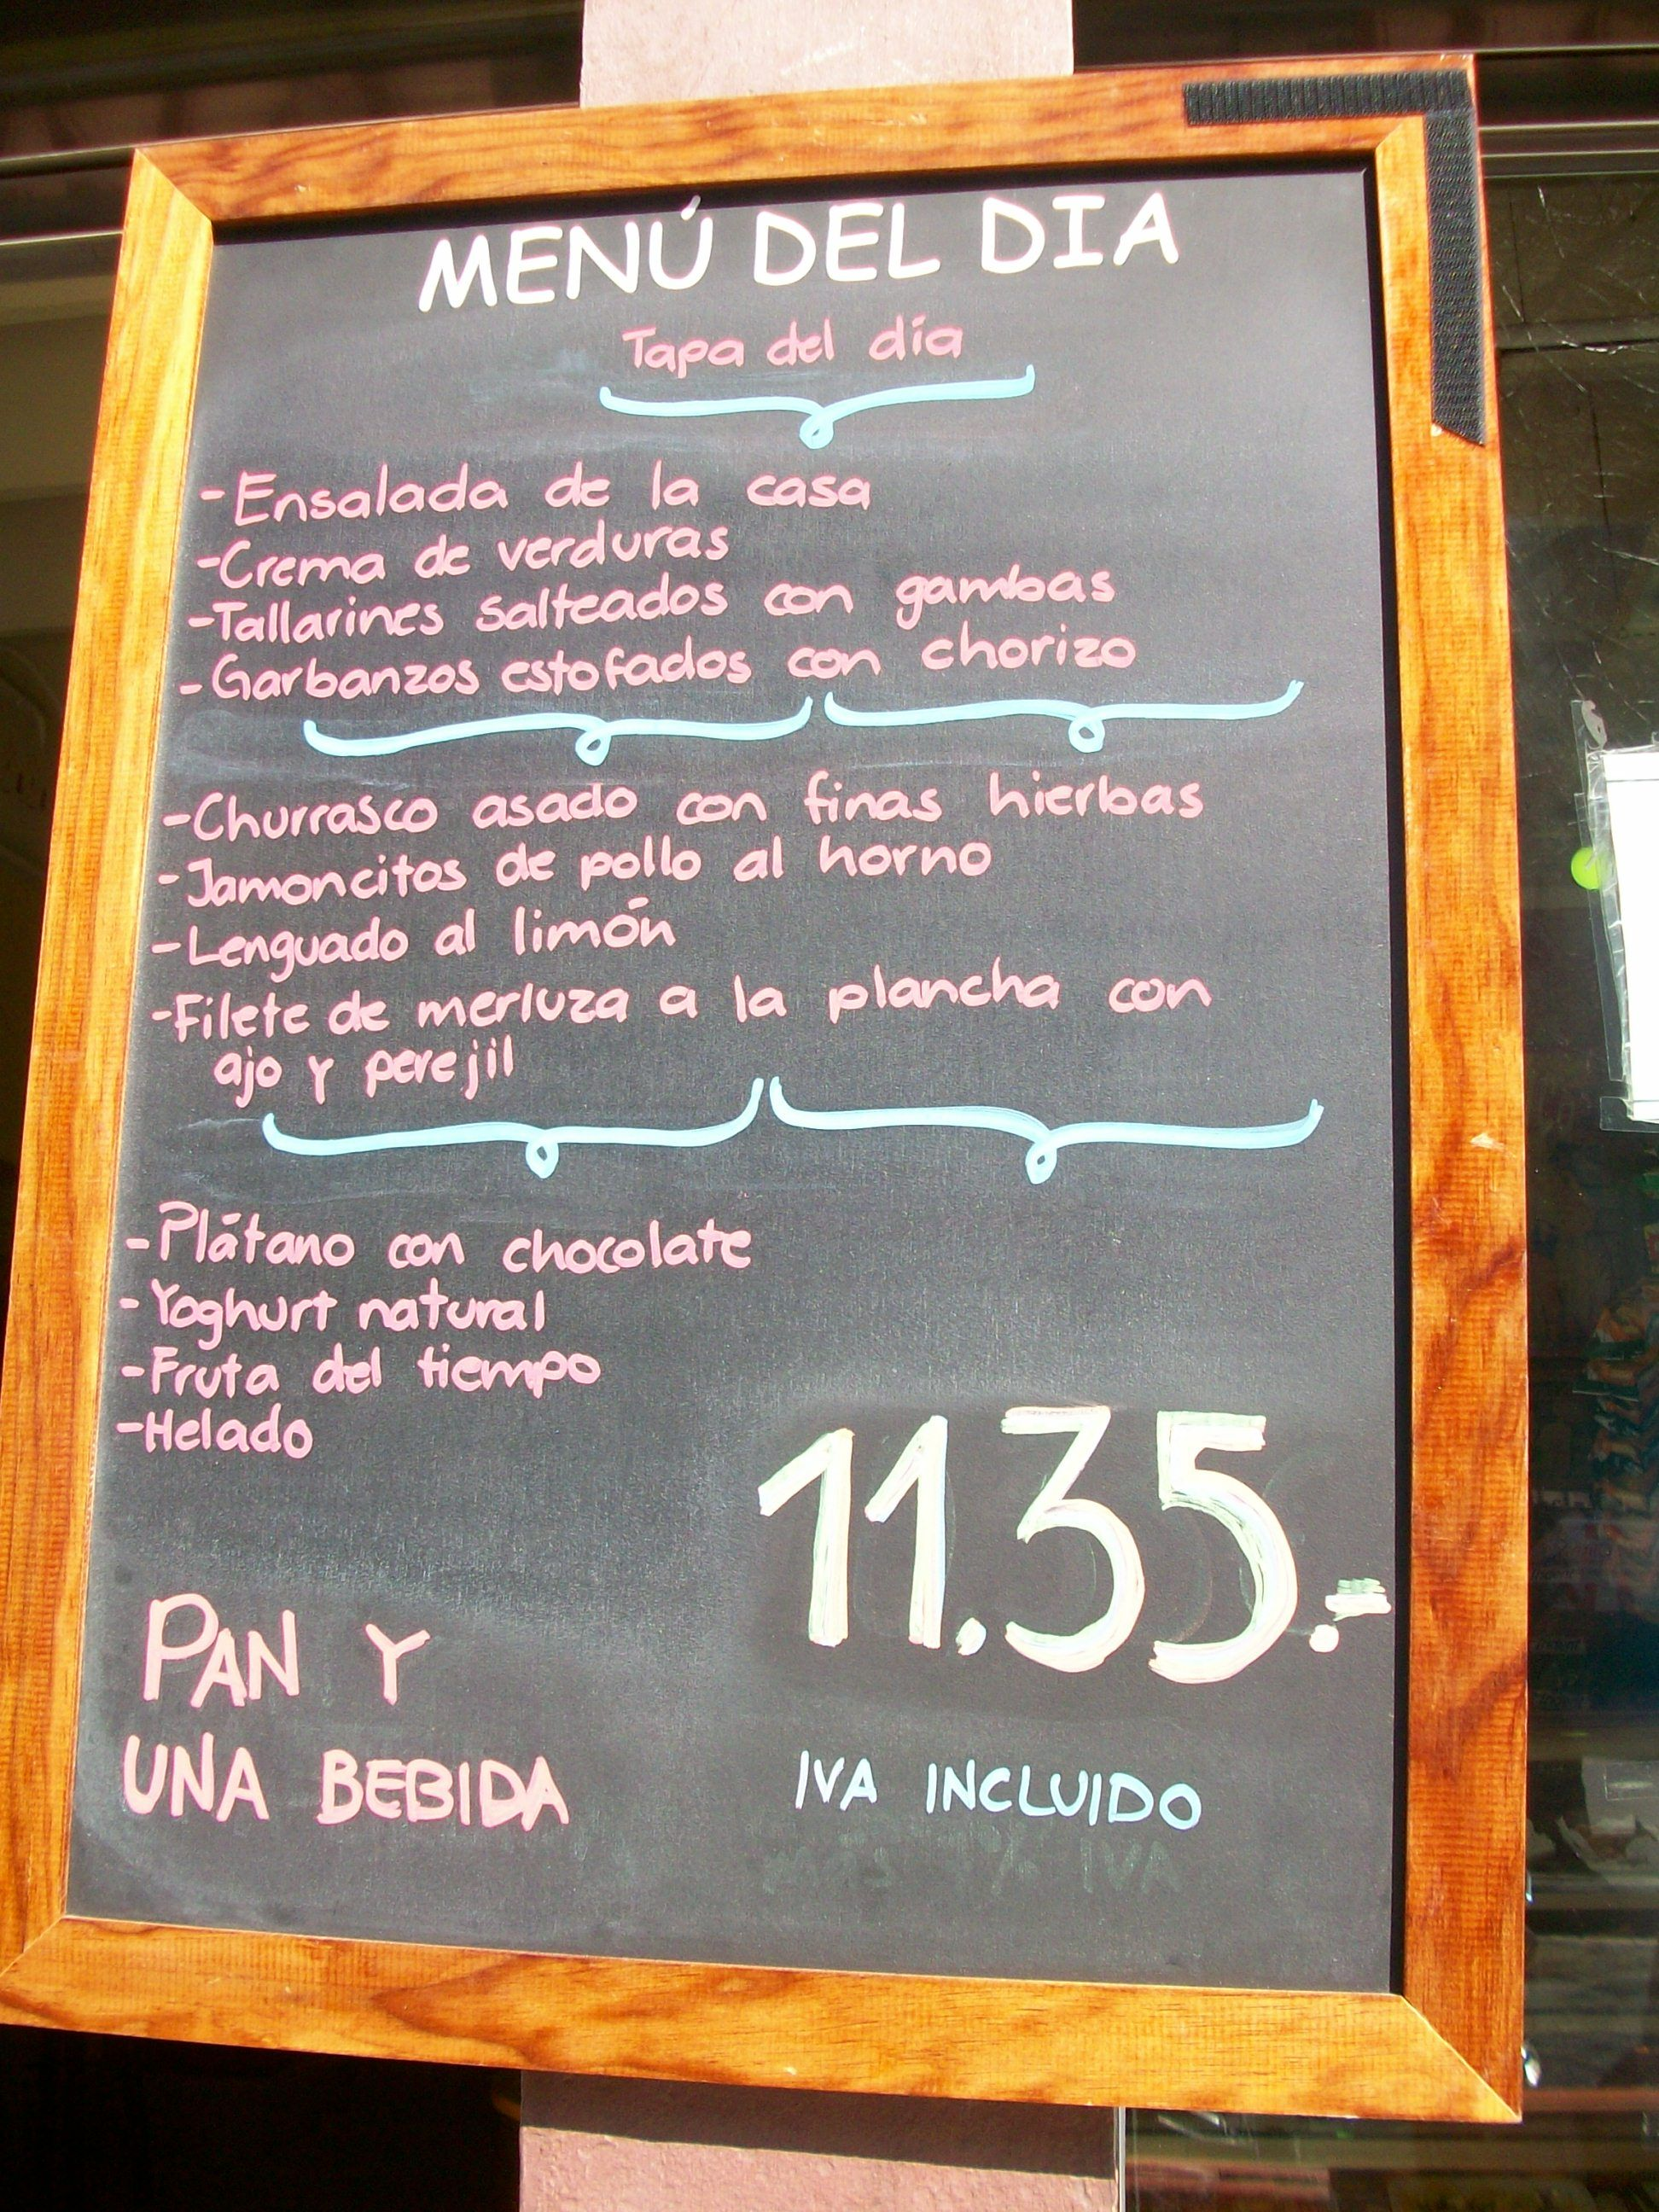 the best deal for lunch is the menu del dia, which is a set-price 3